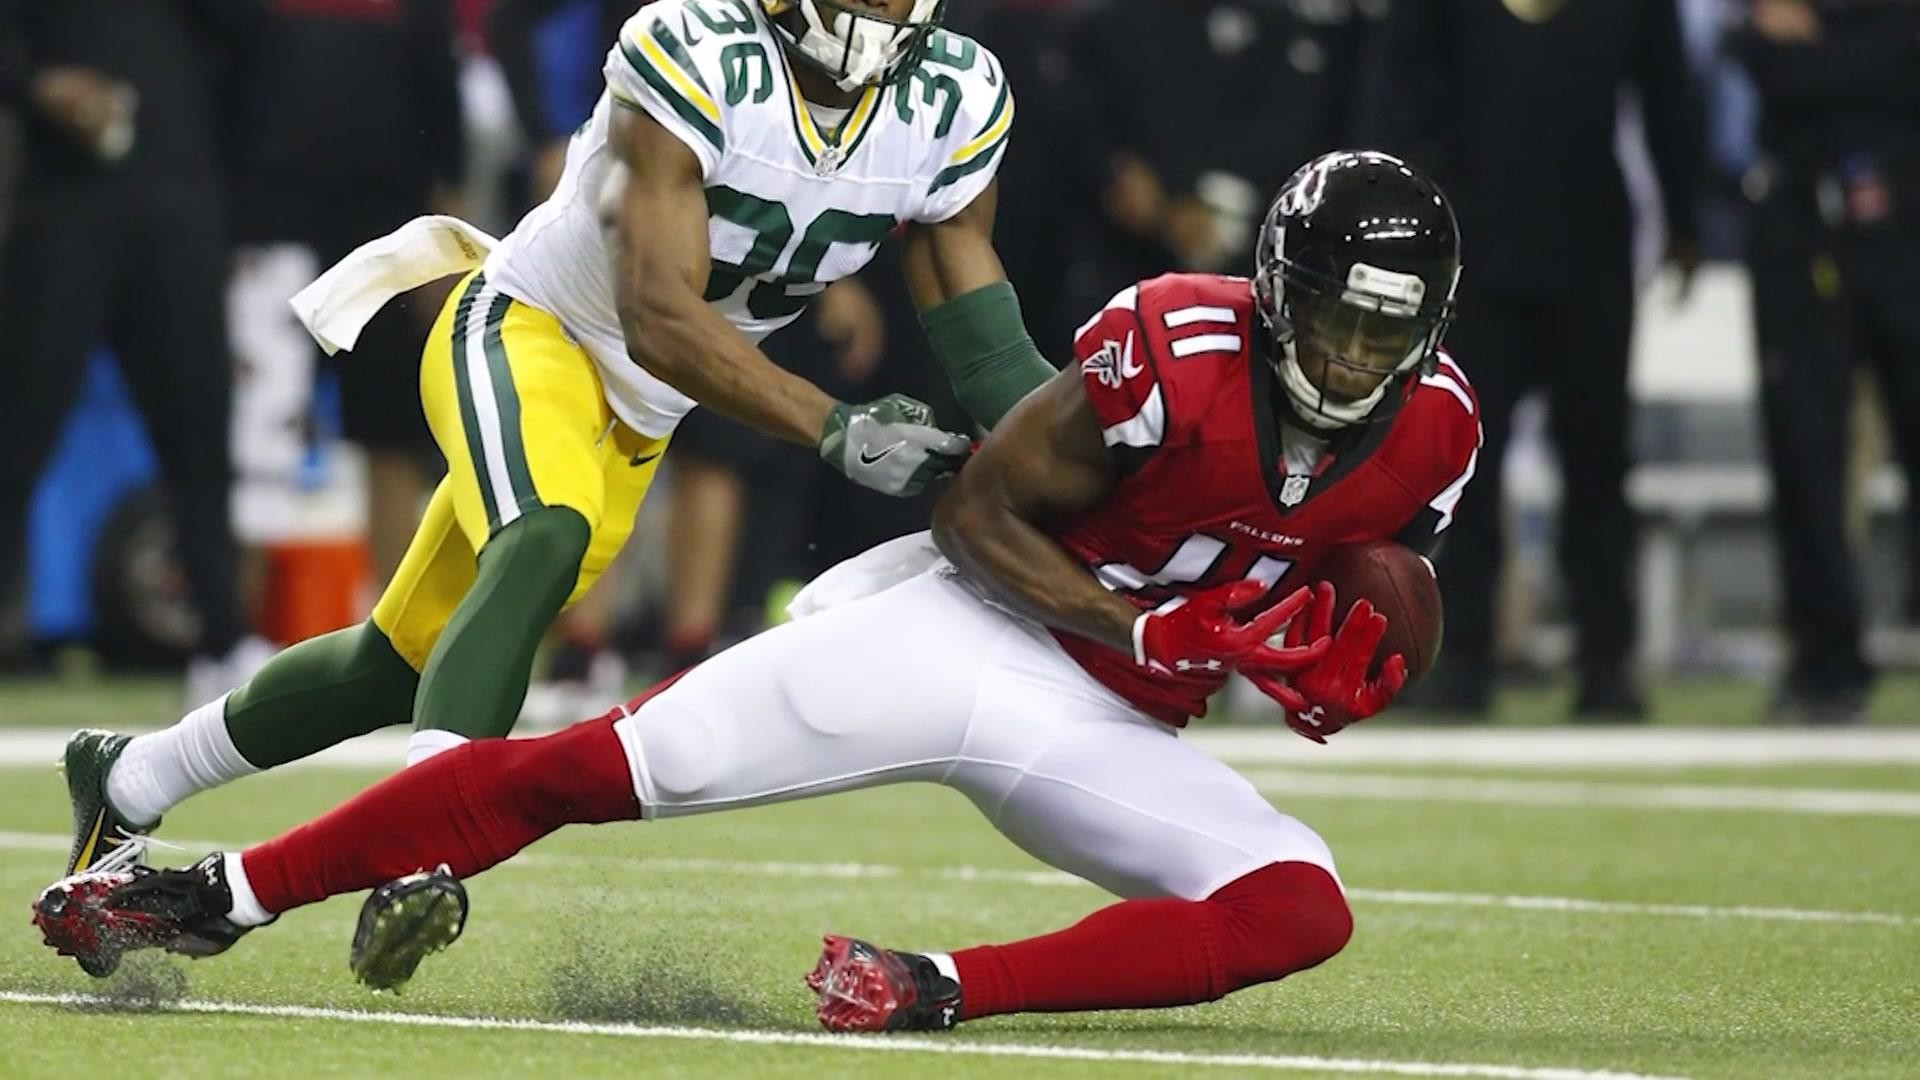 1920x1080 Troy Brown: Julio may be closest receiver to Randy Moss in a long time |  NBC Sports Boston